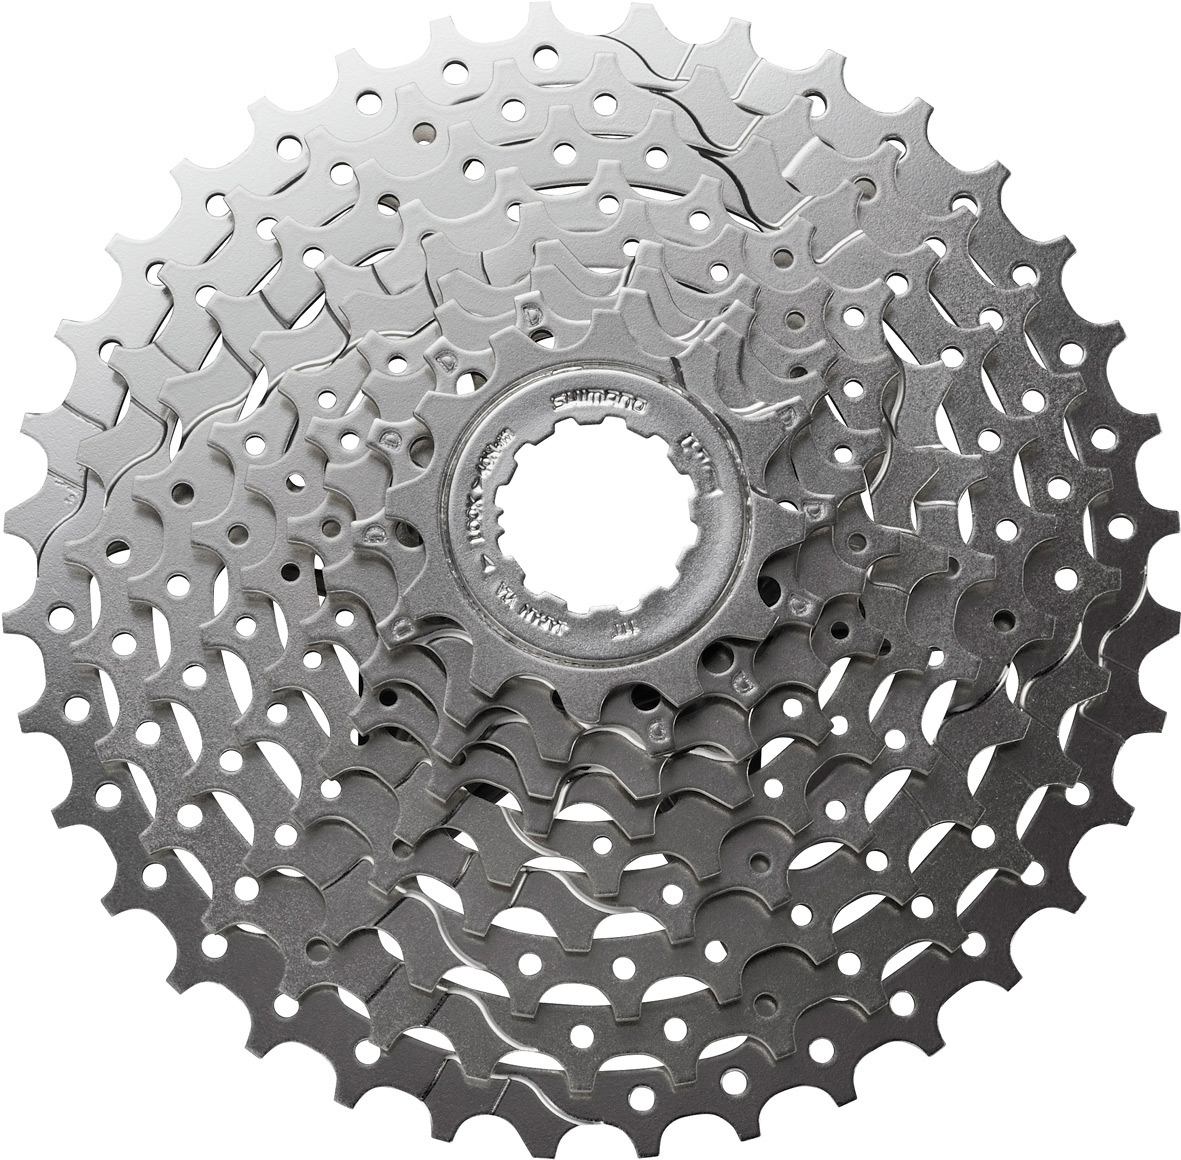 CS-HG400 Alivio 9-speed cassette 11-32